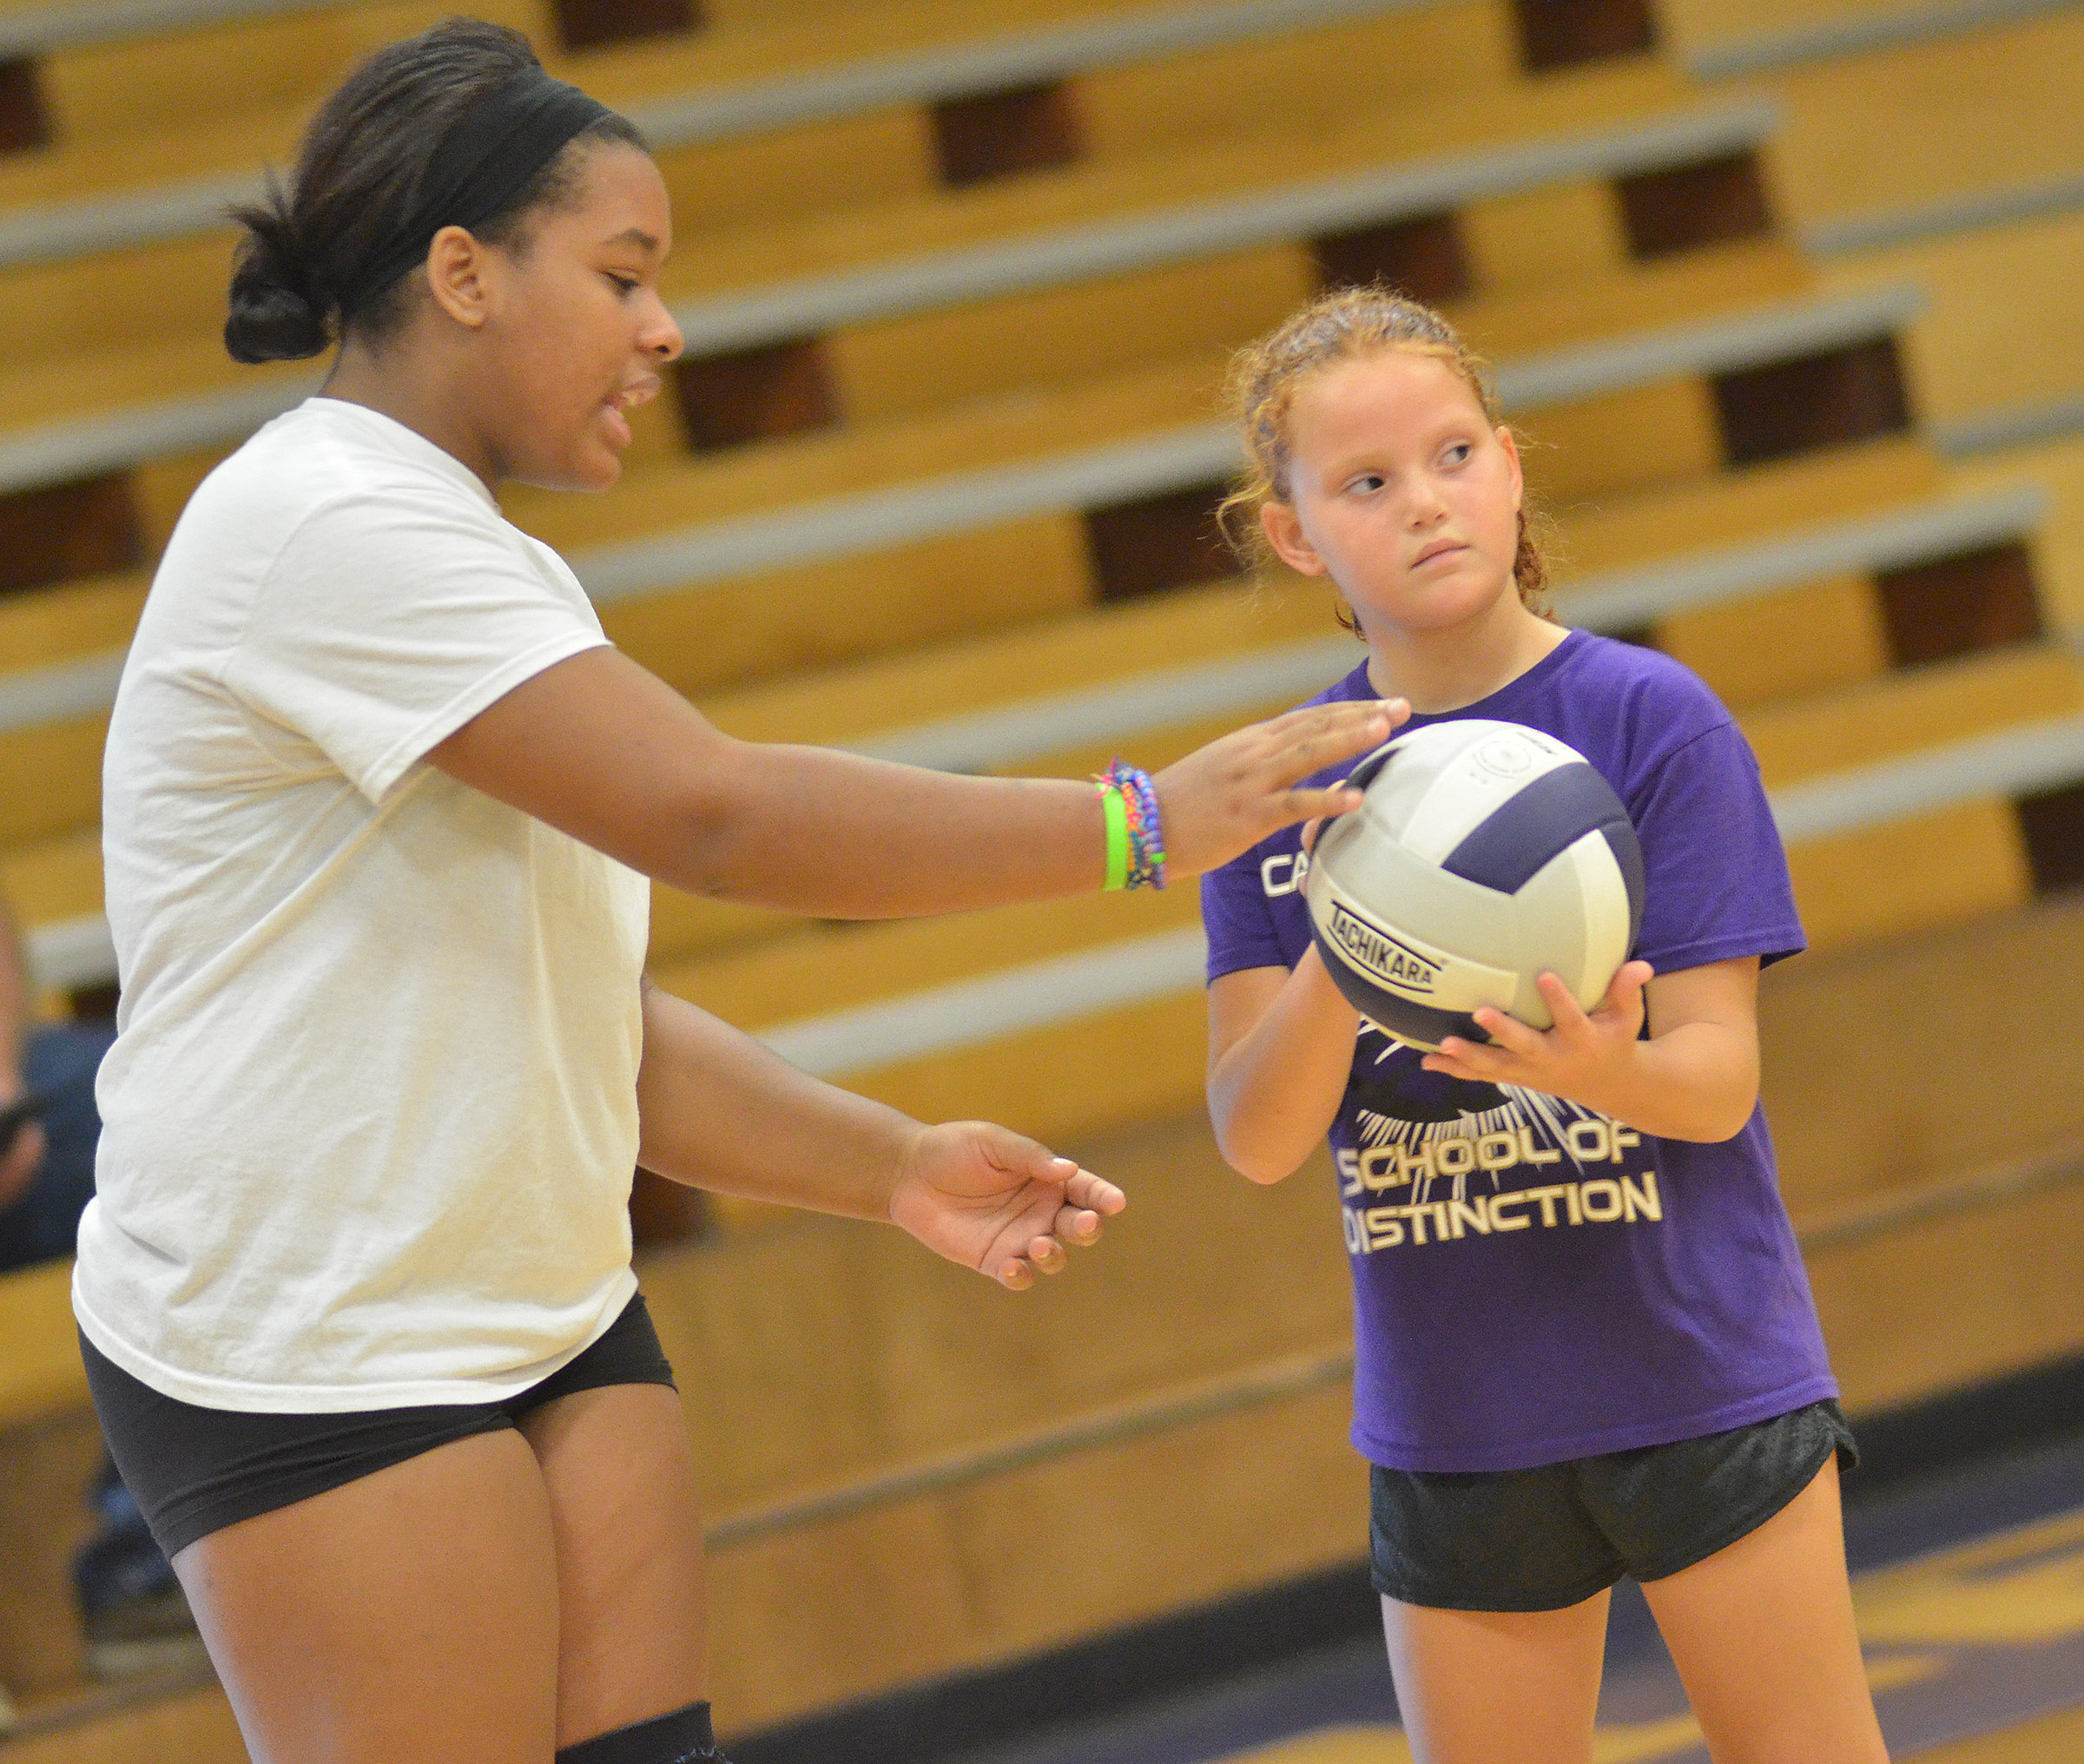 CHS senior Kayla Young helps CES third-grader Analeigh Foster position herself to serve.